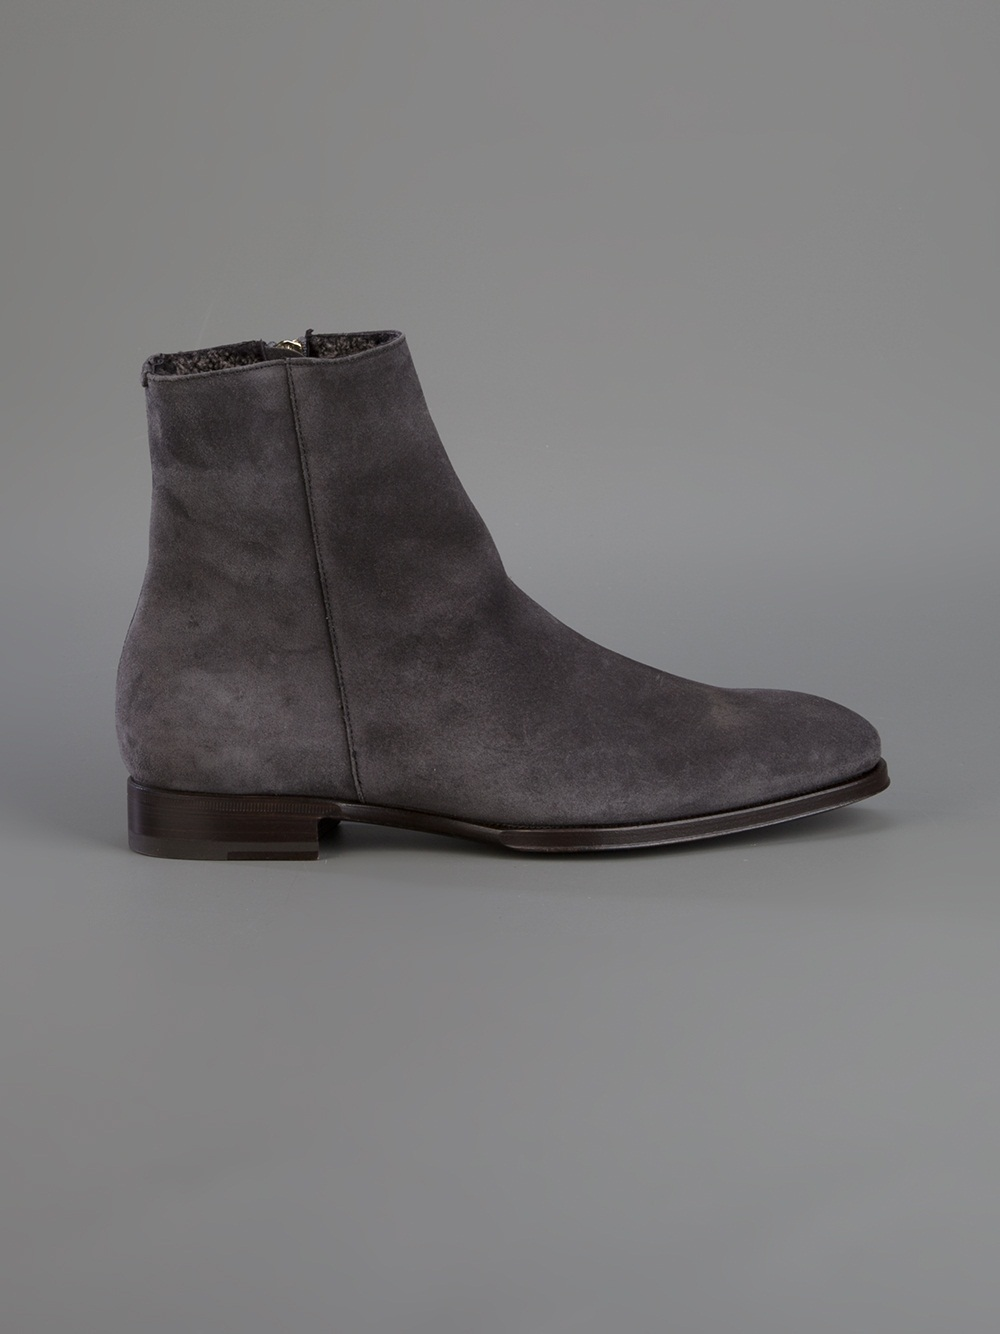 Lyst Max Verre Zip Ankle Boot In Gray For Men